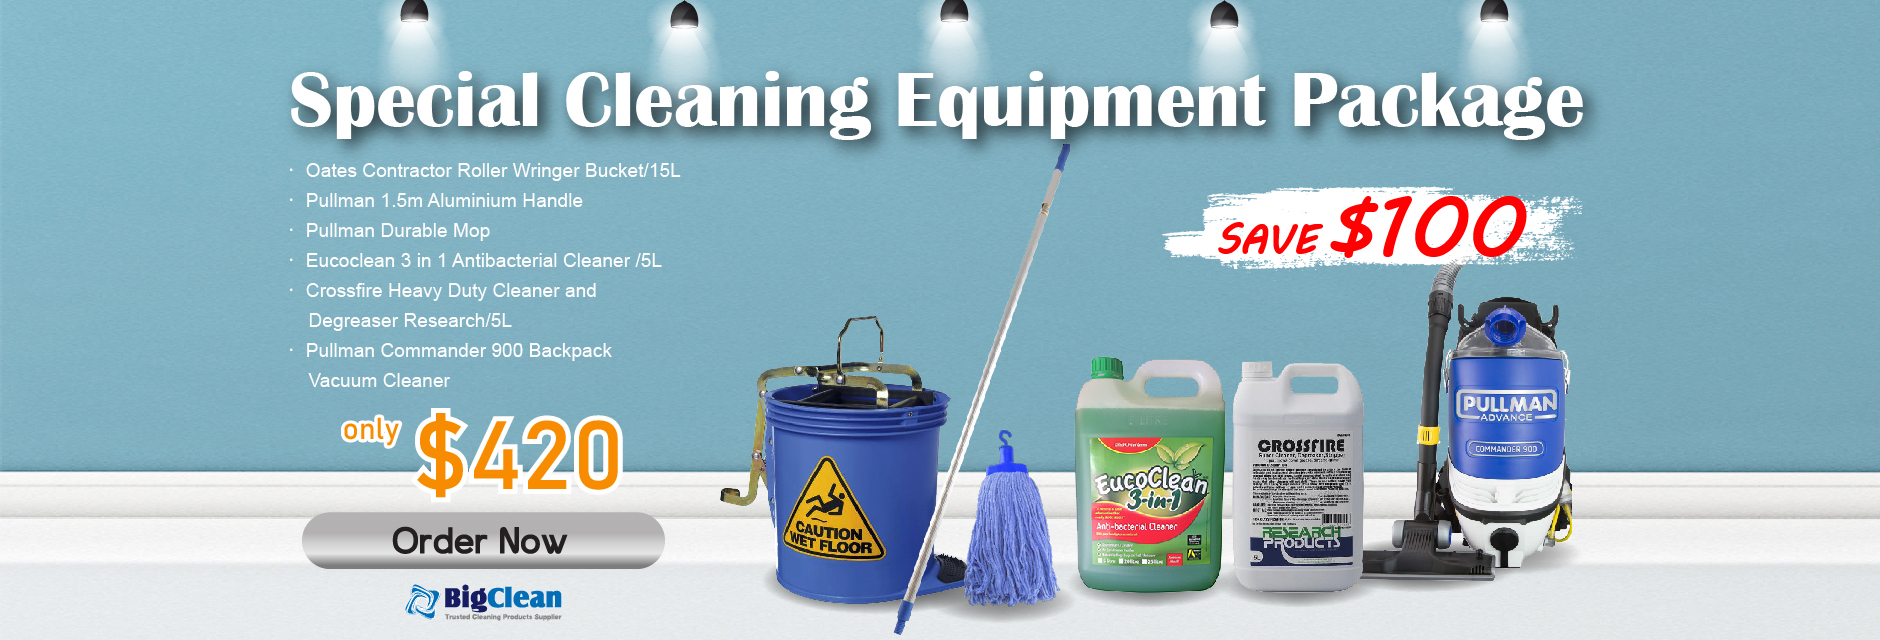 Special Cleaning Equipment Pac...